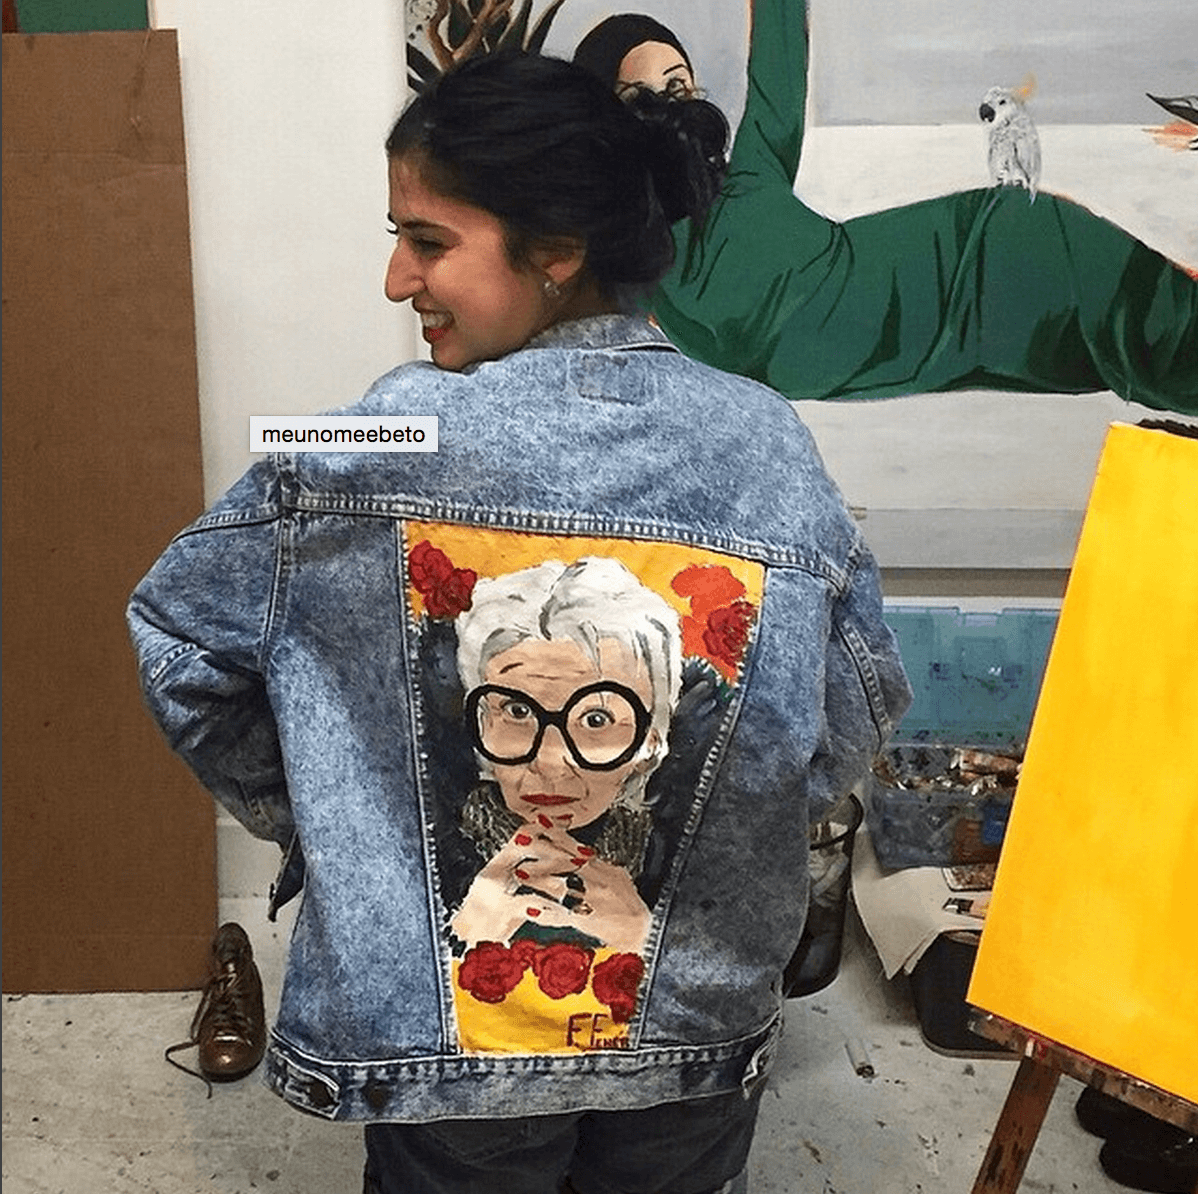 Shop Ladies Fernanda Feher Denim Jackets Customized Iris Apfel